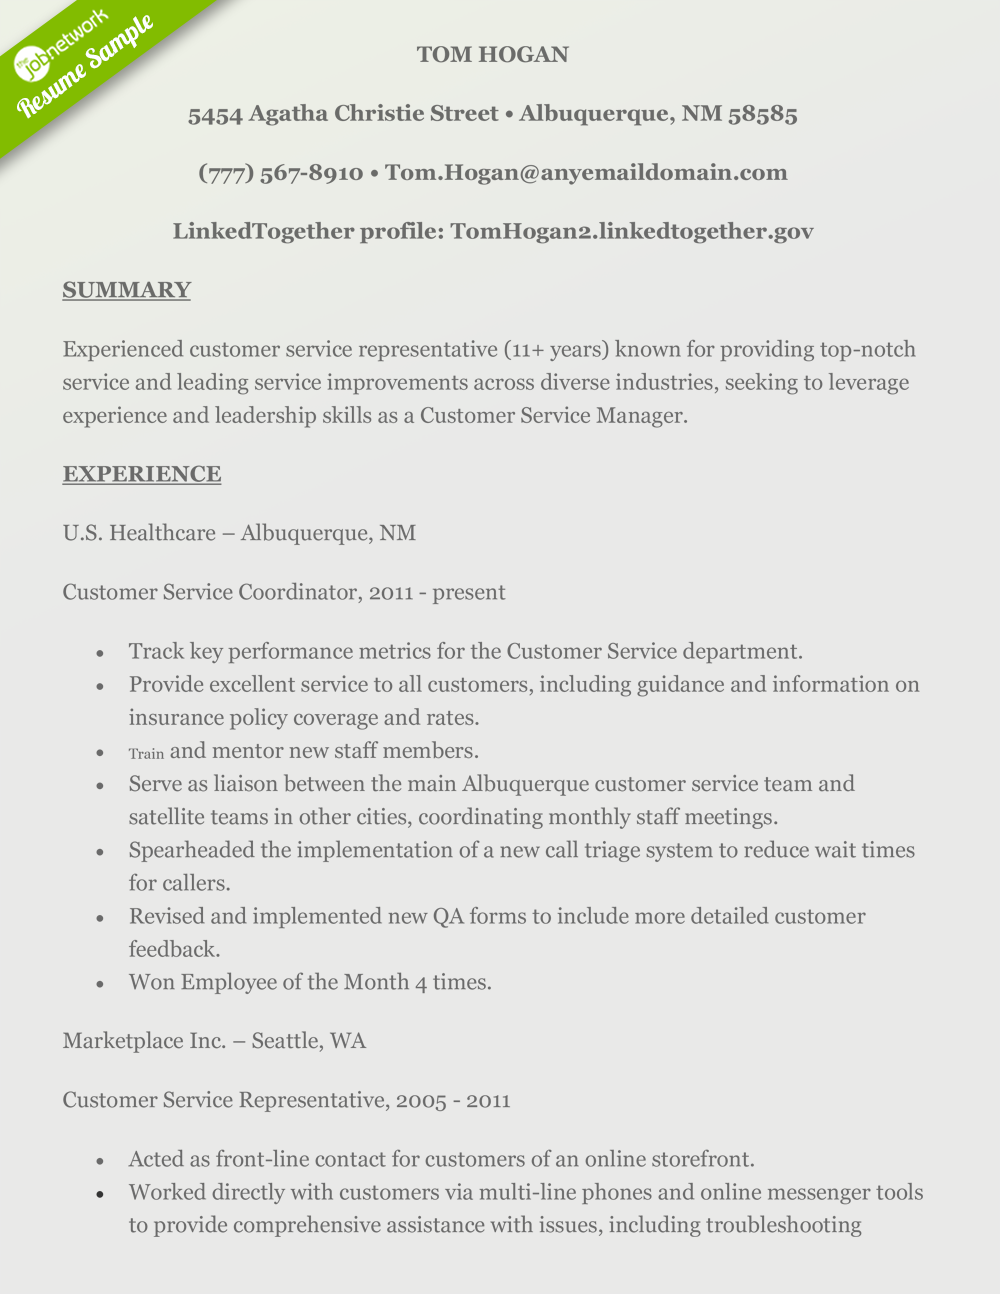 how to craft a perfect customer service resume using examples tom hogan resume